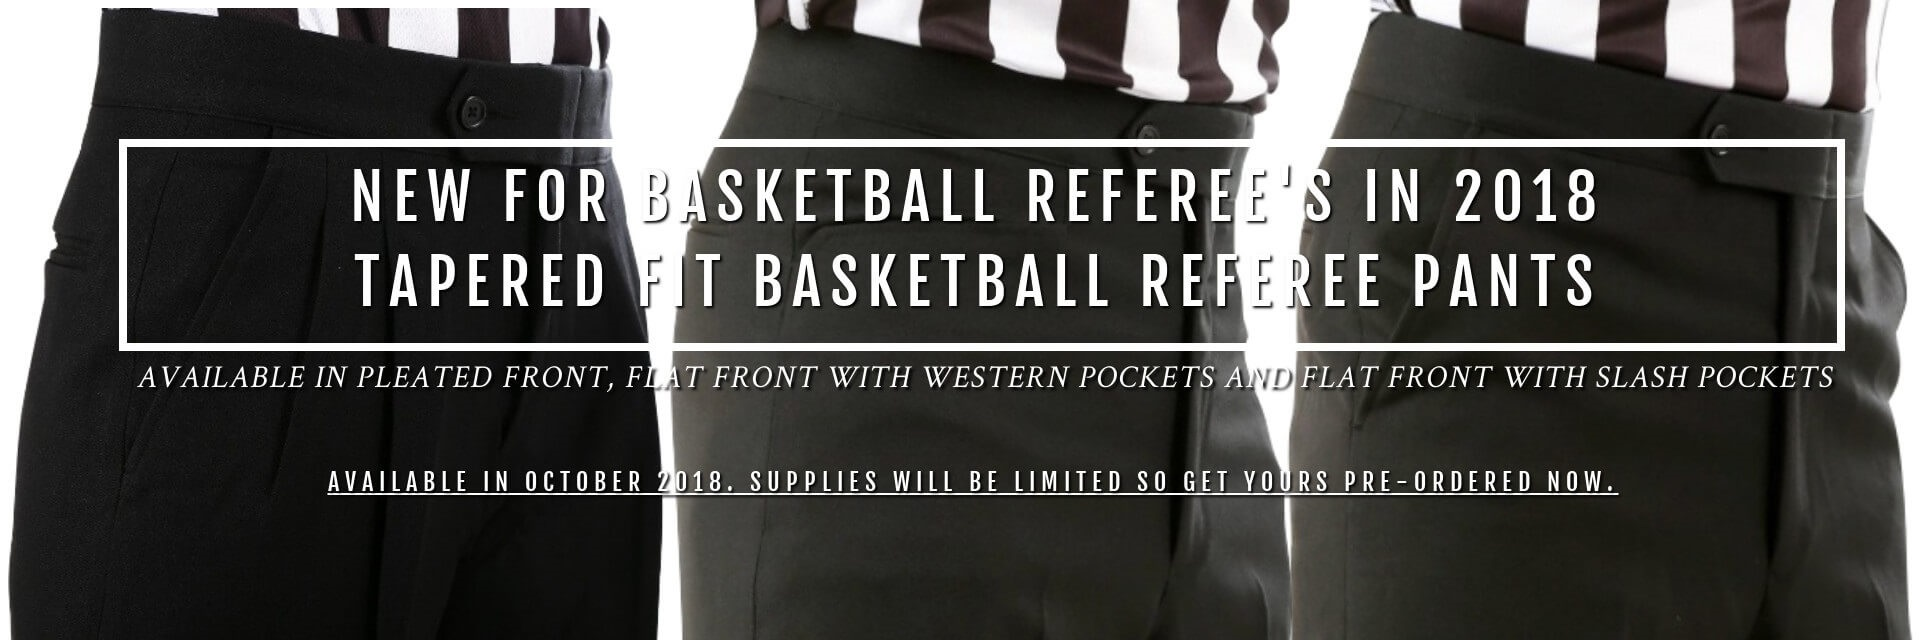 Tapered Fit Basketball Referee Pants